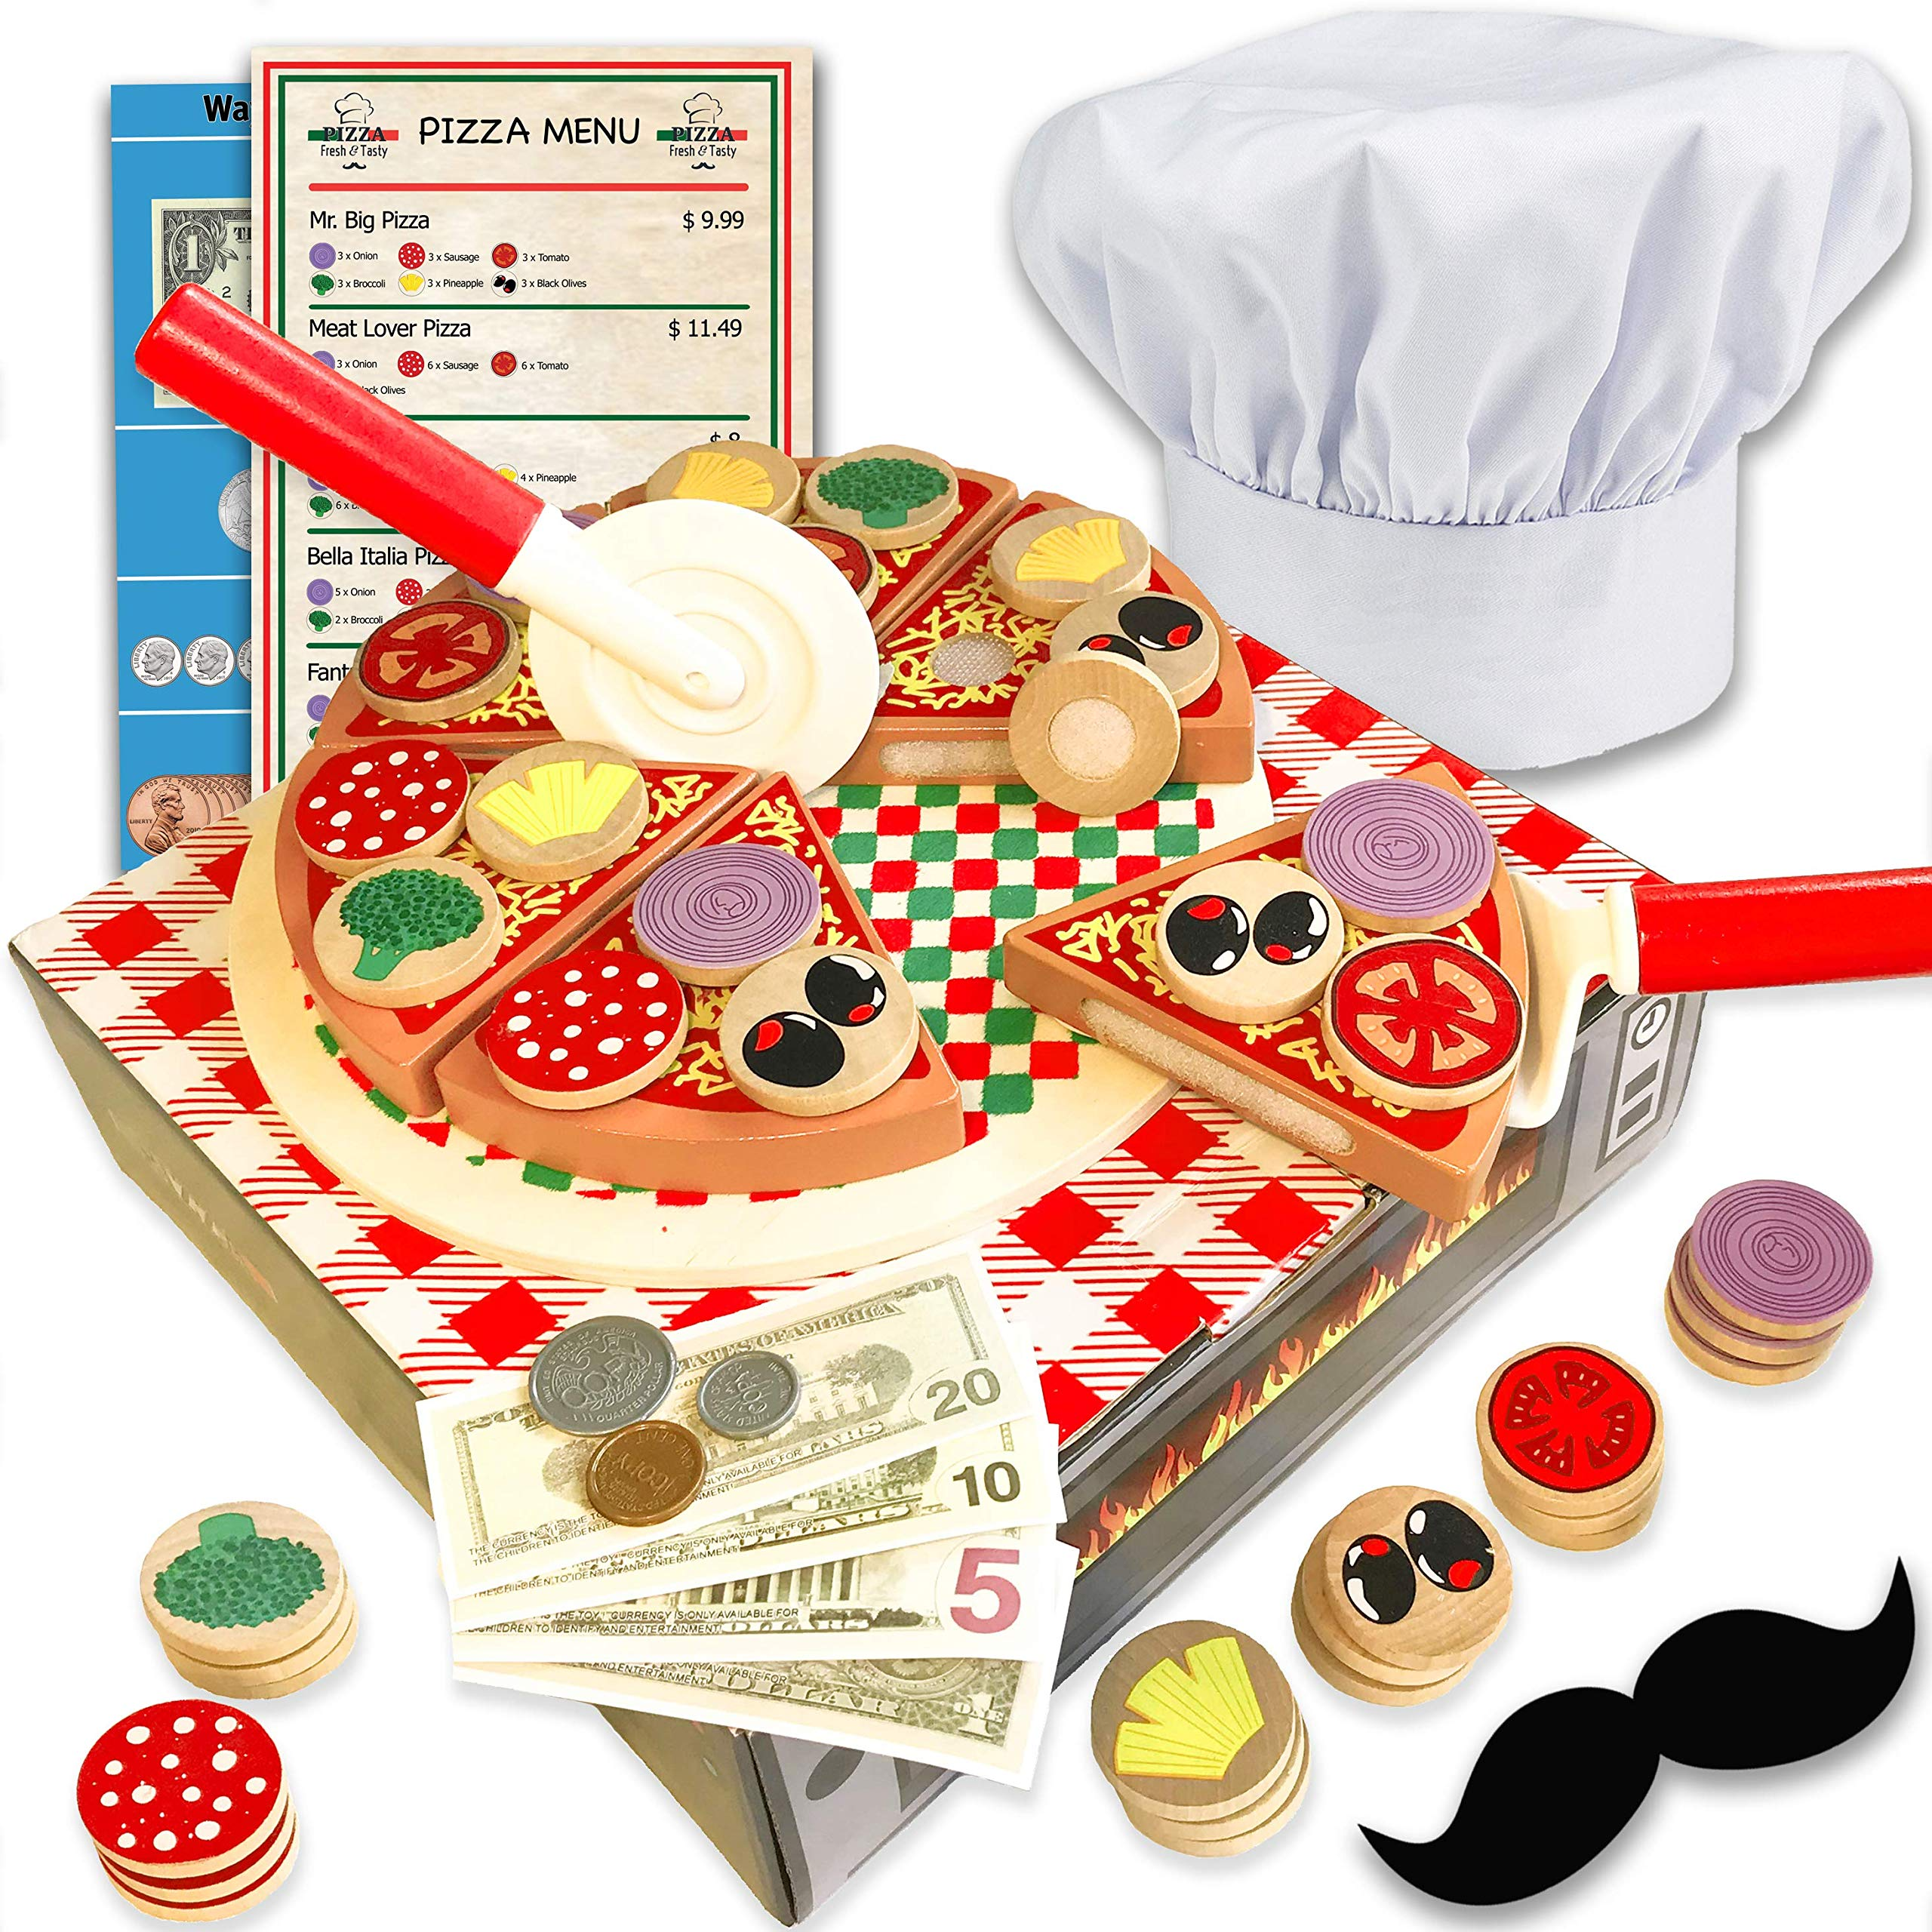 Wooden pizza toy for kids Pizza Play Food Set - Wooden play food sets for kids with chef hat (121 pcs) -Most Complete Kids Pizza Set Oven Toy & Sticky tab toppings - Pretend Play pizza set for kids by Jogo Jogo